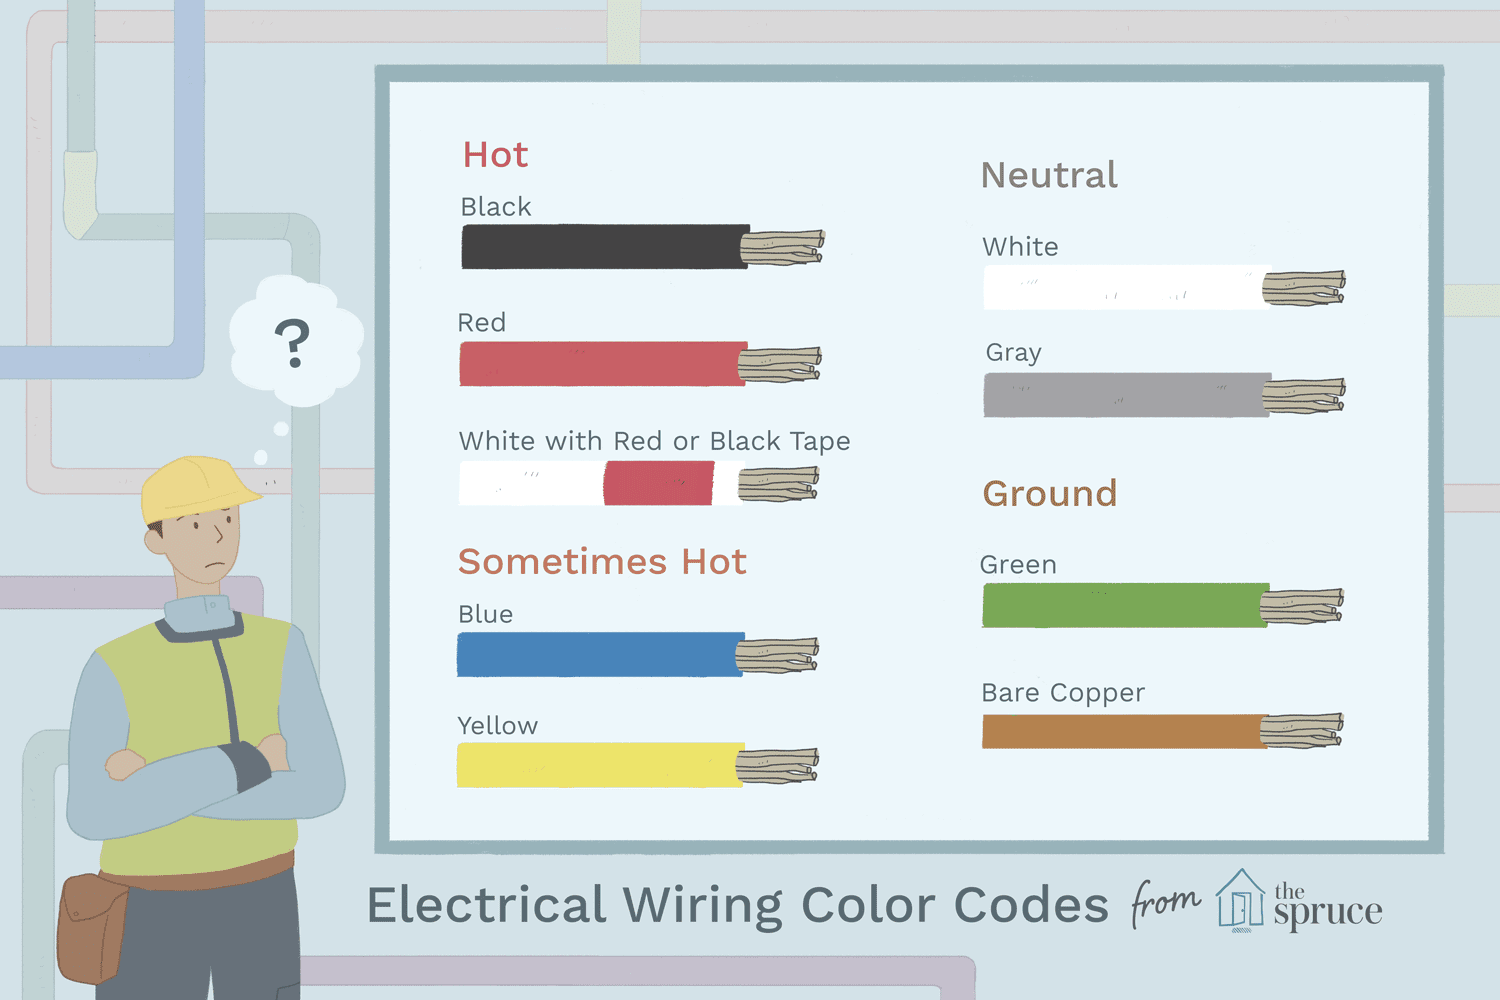 Typical House Wiring Colors Library Wire Electrical Color Coding System